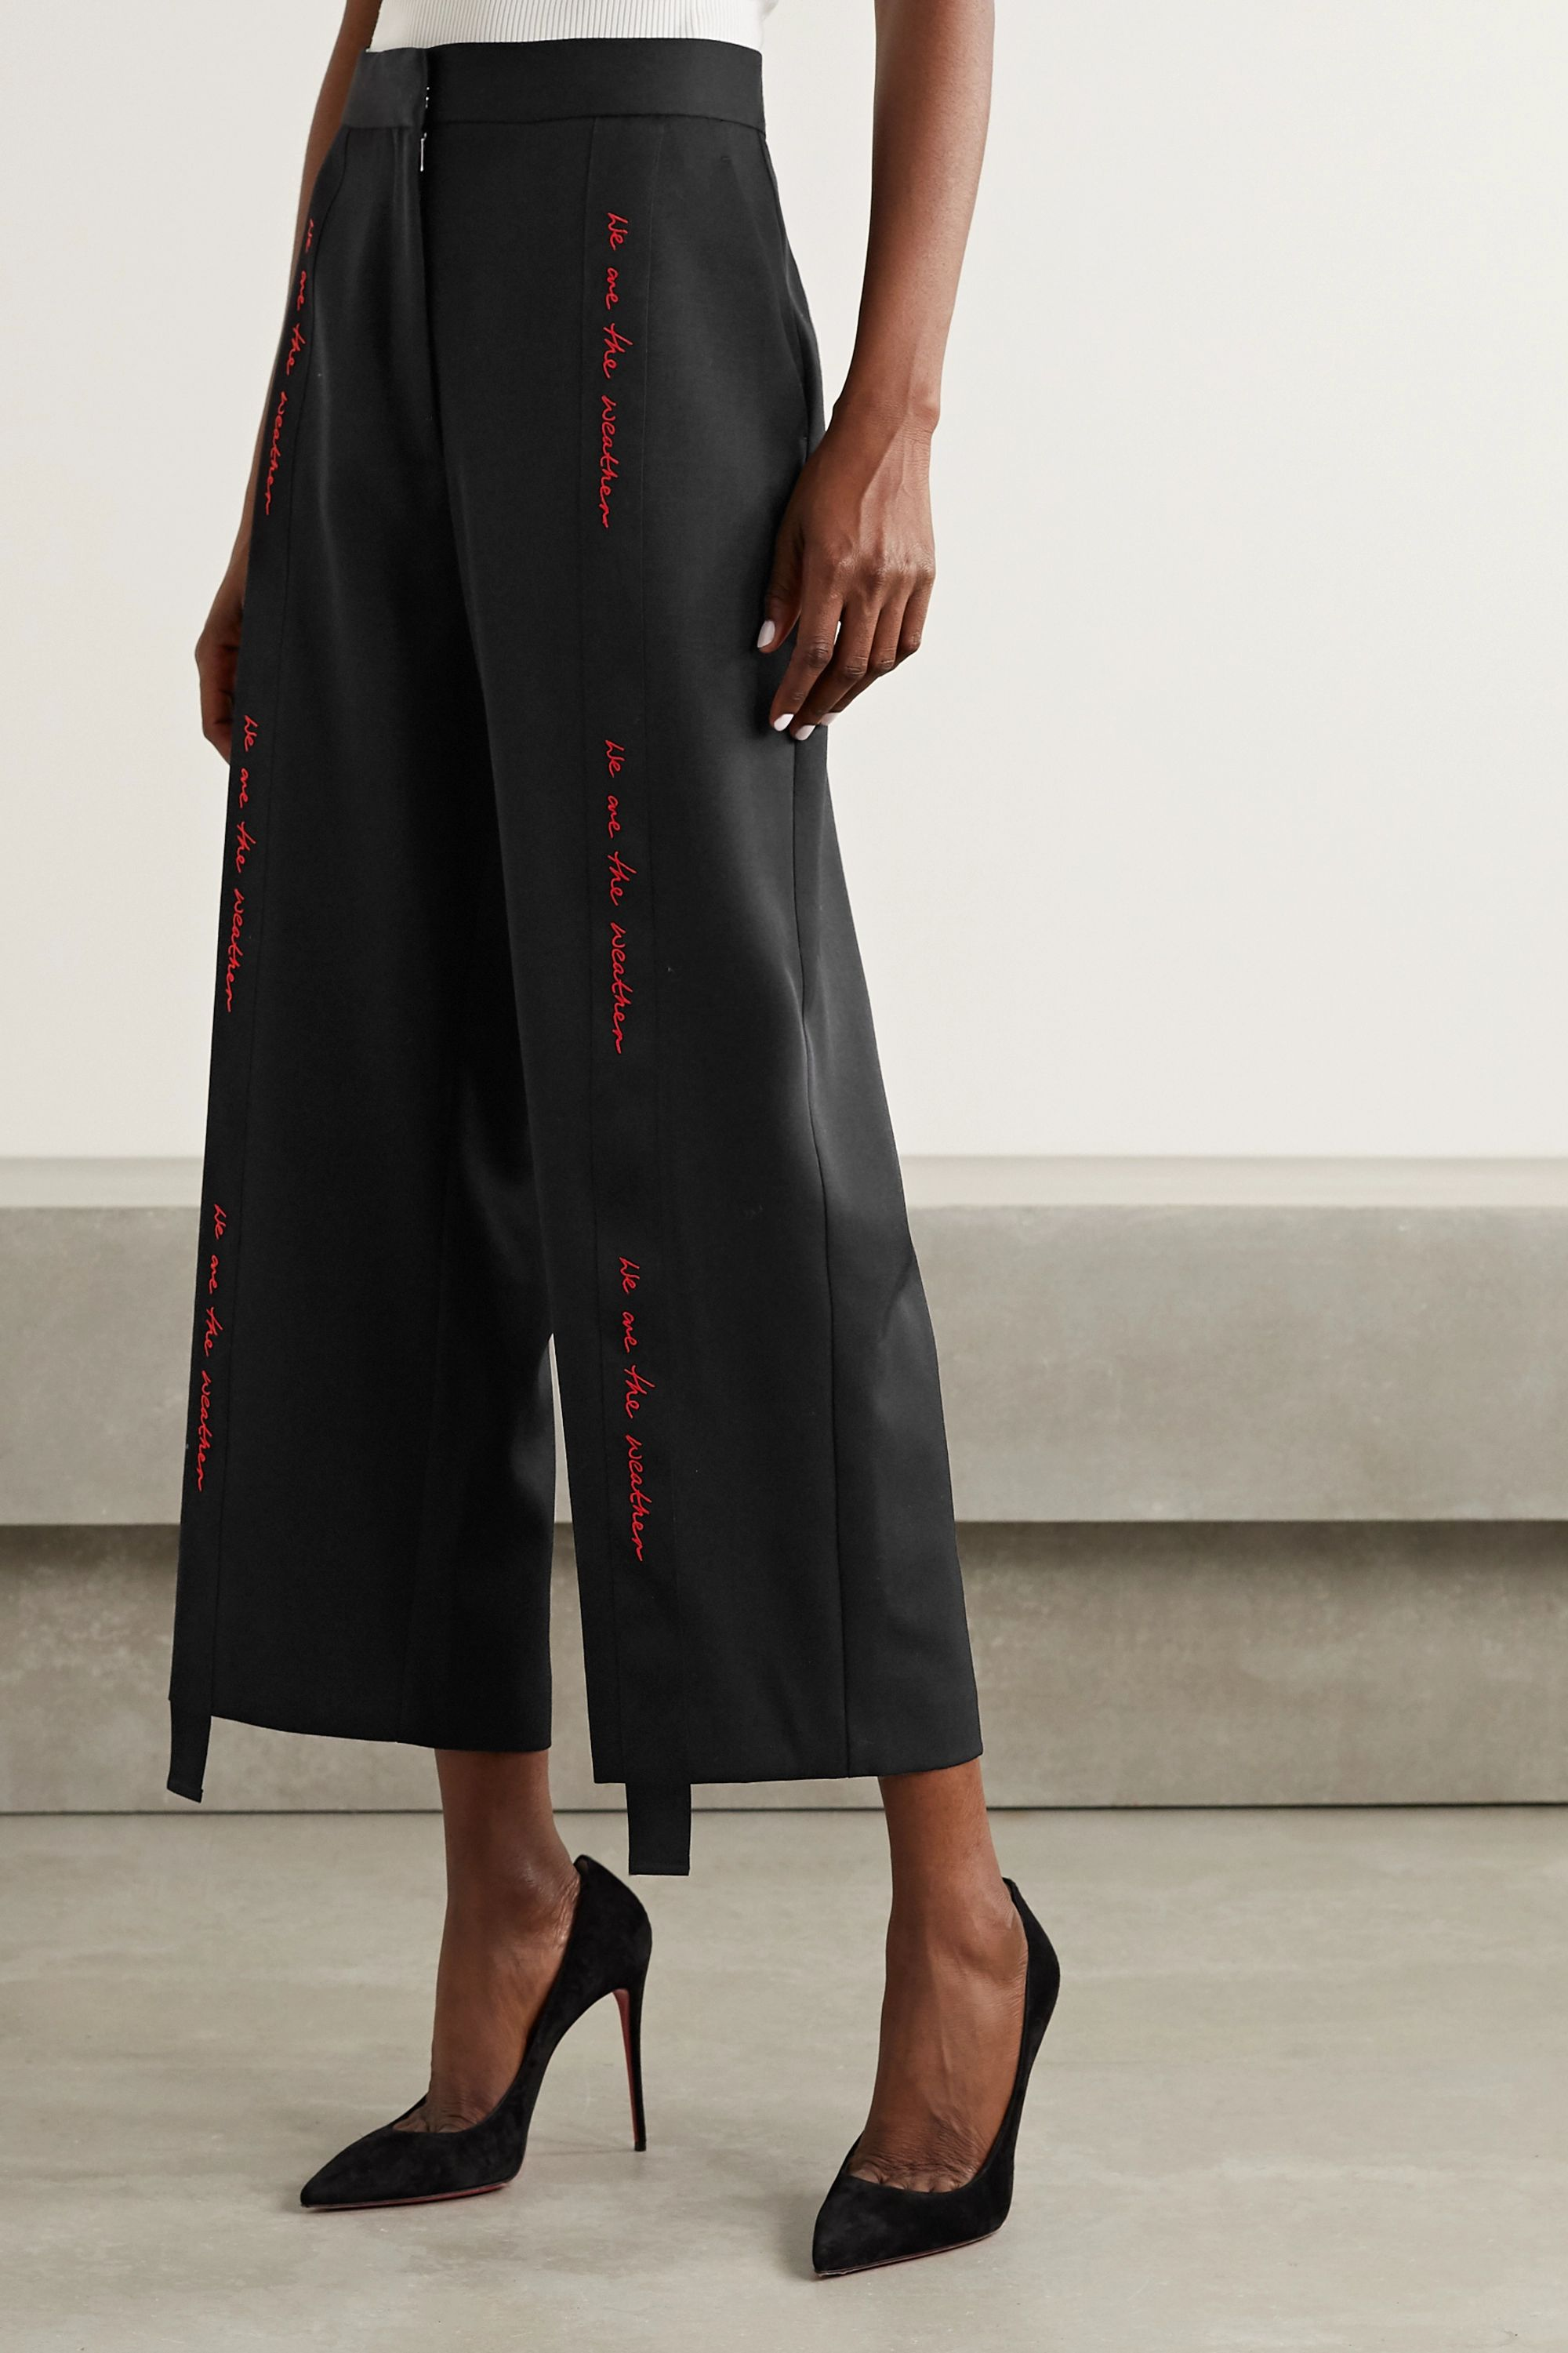 Stella McCartney We Are The Weather embroidered grosgrain-trimmed wool wide-leg pants